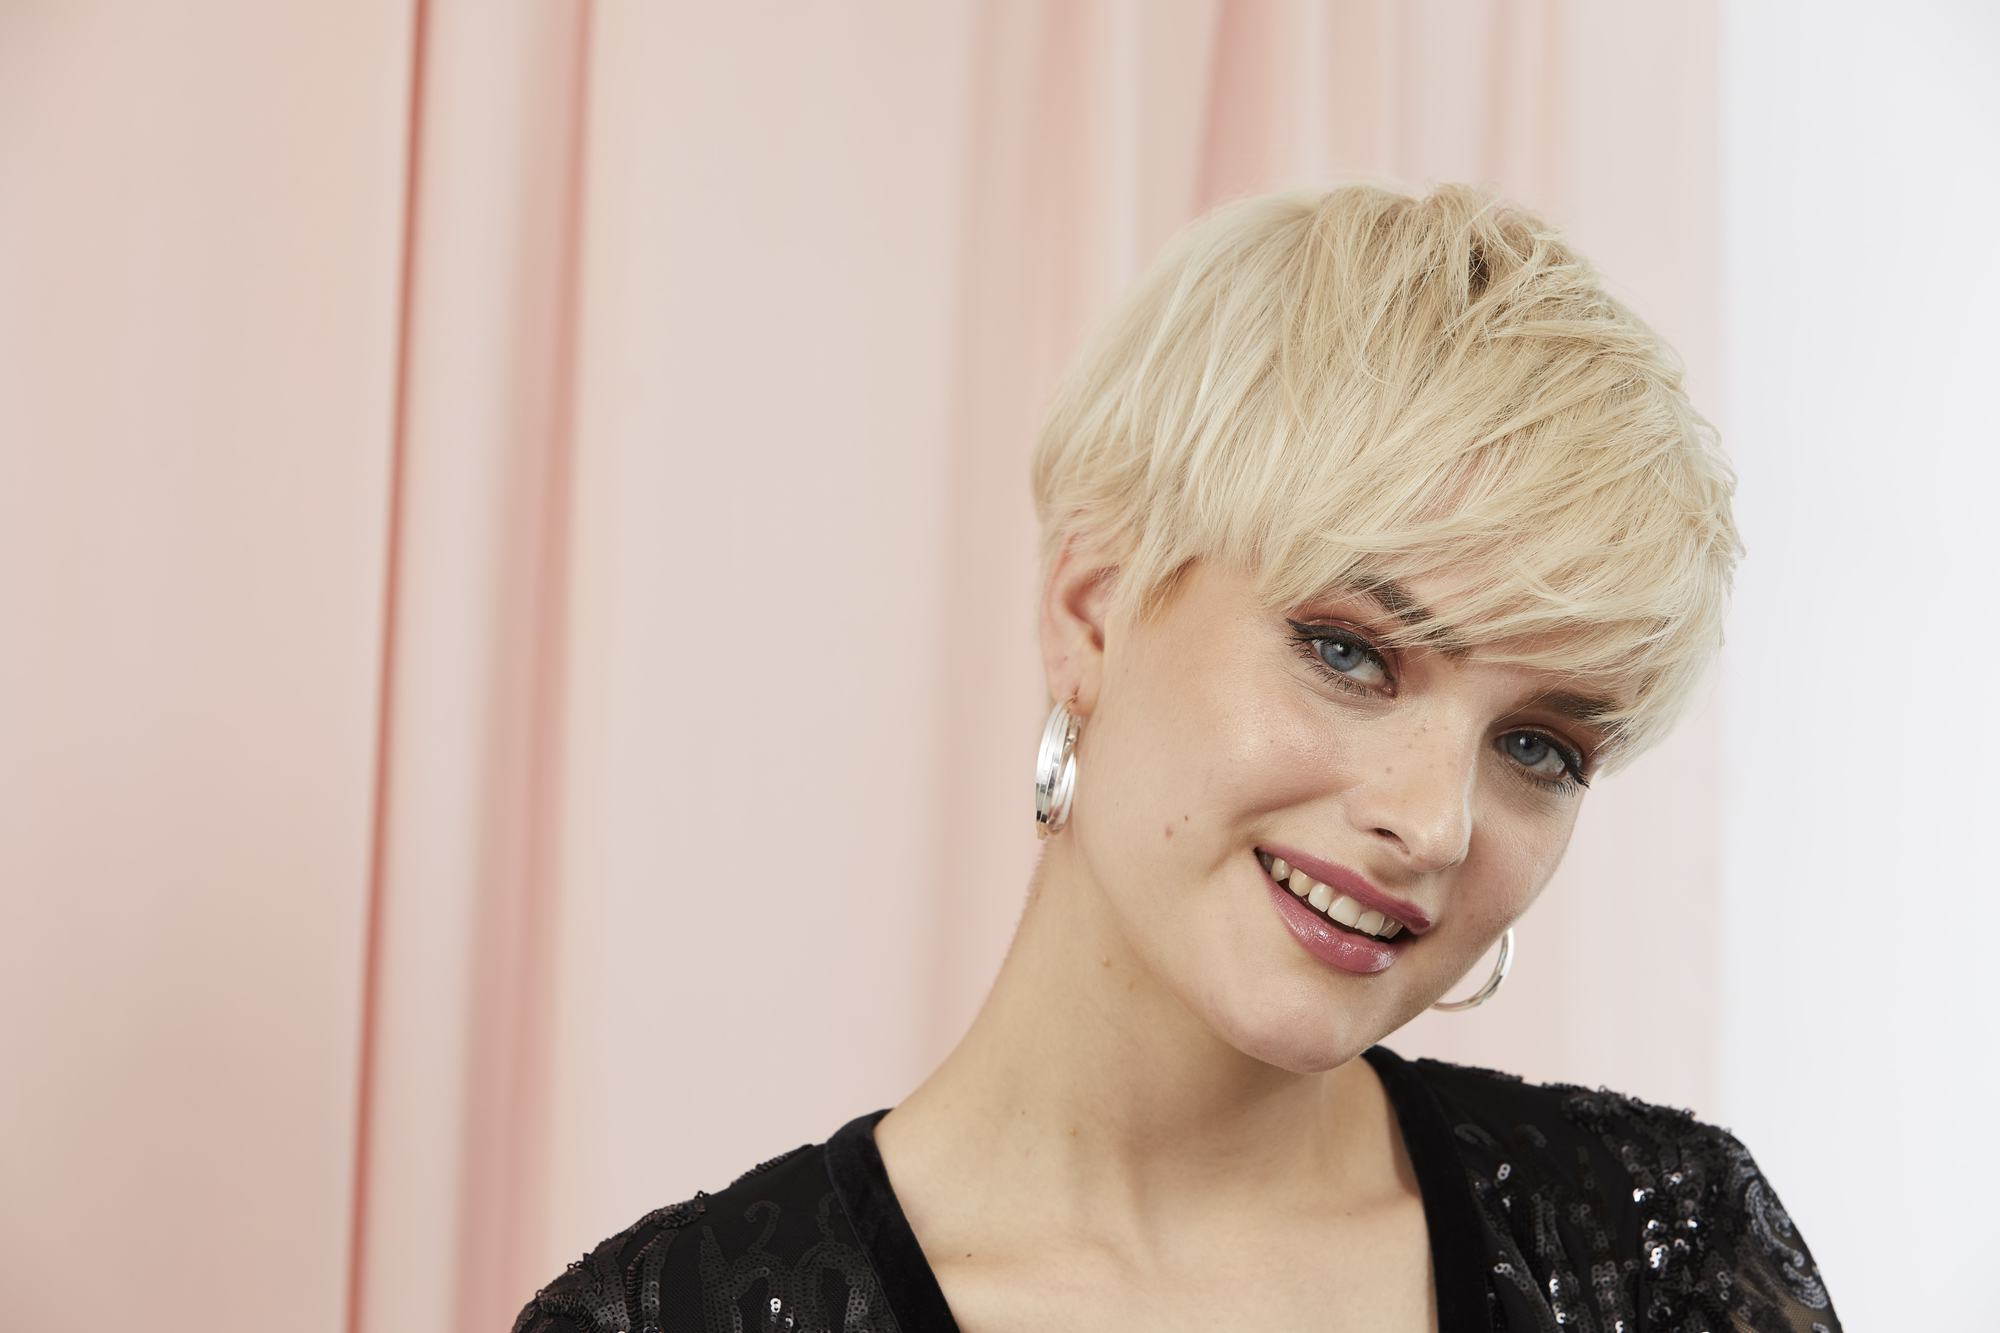 35 Best Pixie Cut Hairstyles For 2019 You Will Want To See In Cropped Pixie Haircuts For A Round Face (View 15 of 20)